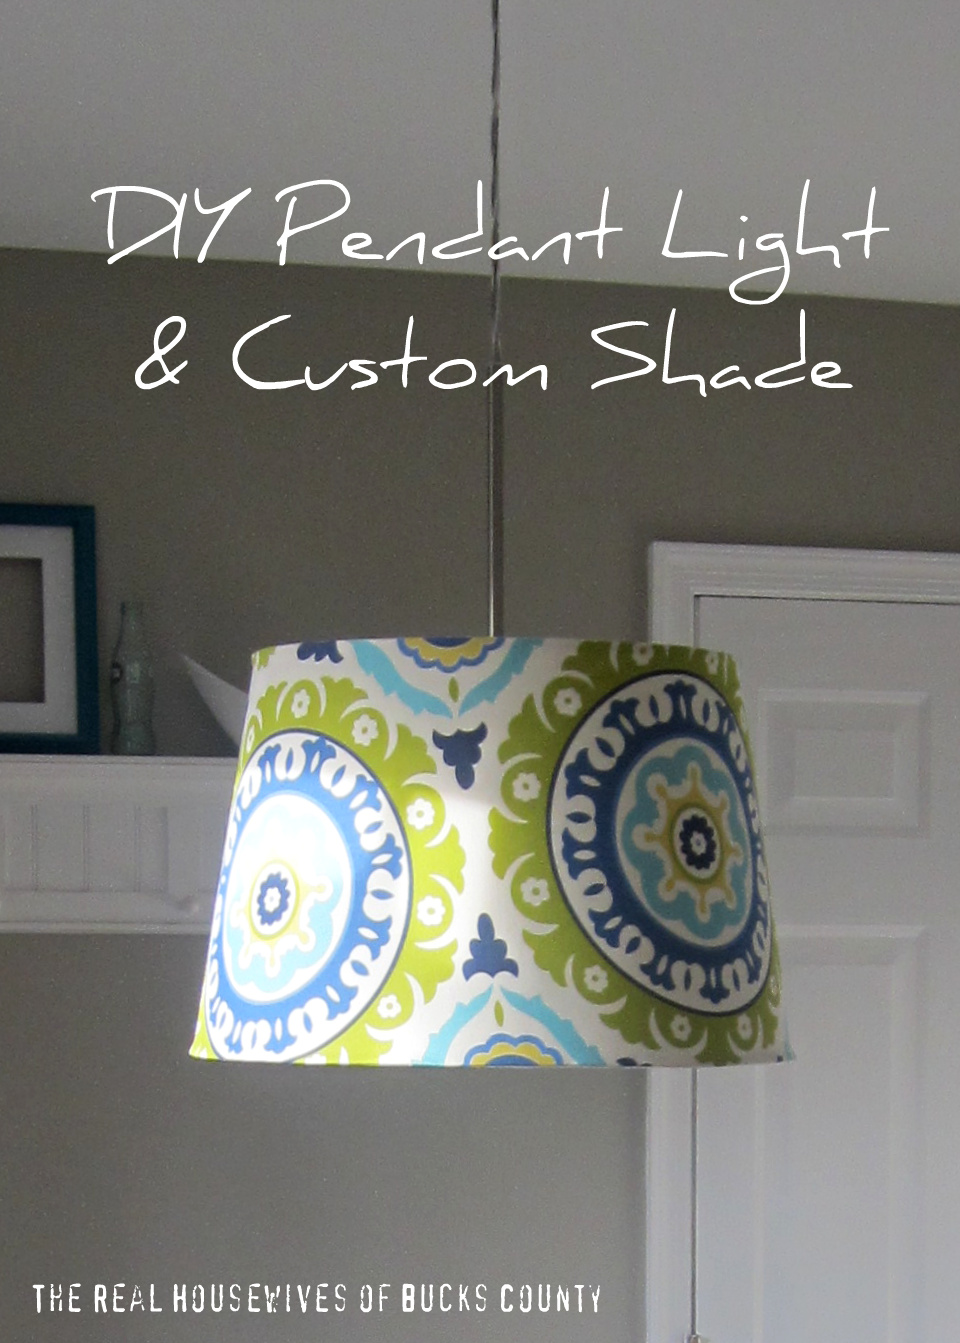 Diy pendant light custom shade east coast creative blog aloadofball Image collections